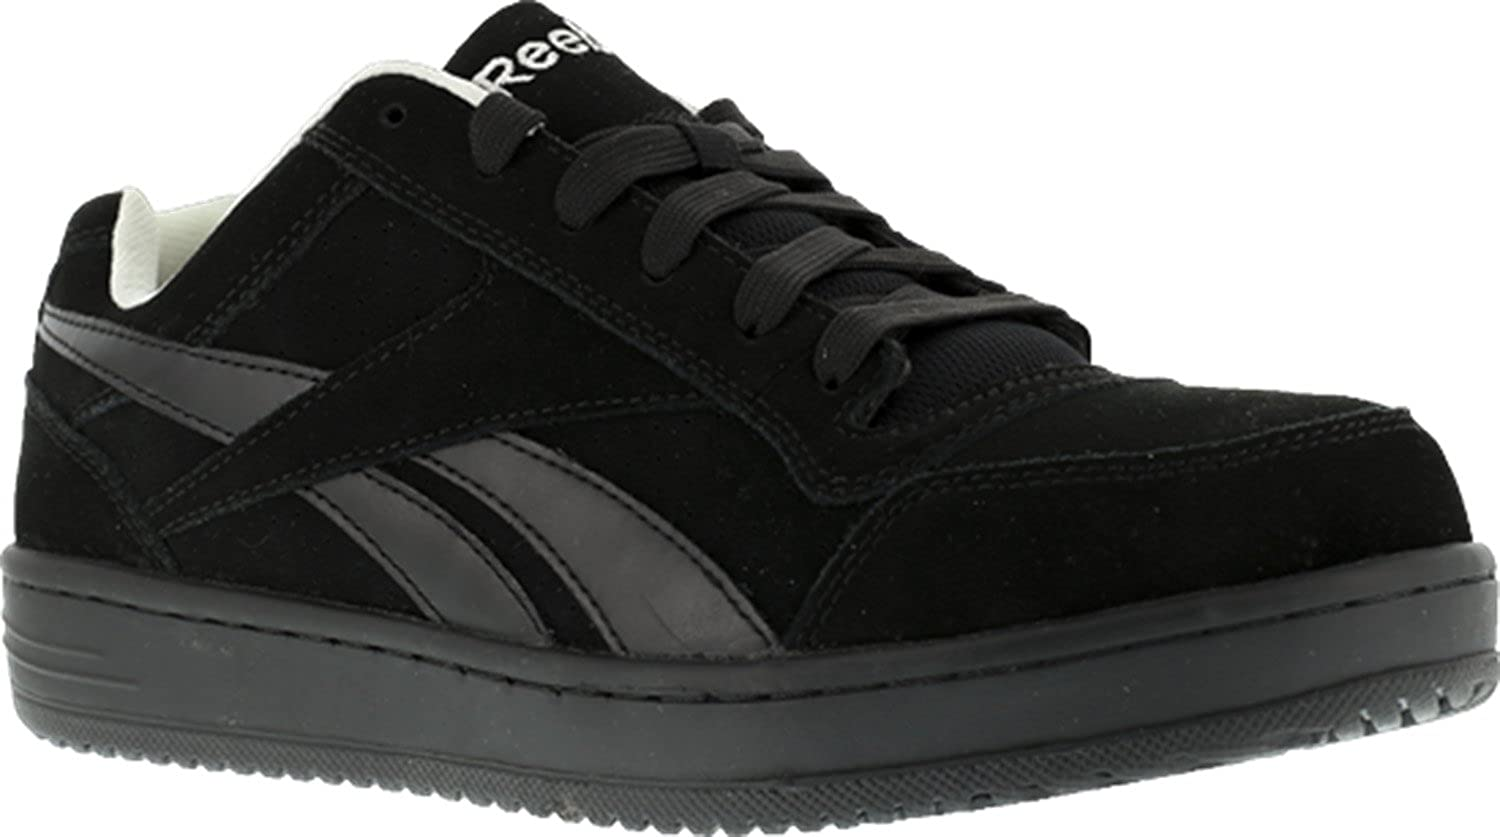 Reebok Work Men s Soyay RB1910 Skate Style EH Safety Shoe 60%OFF ... 4f12a2fb1